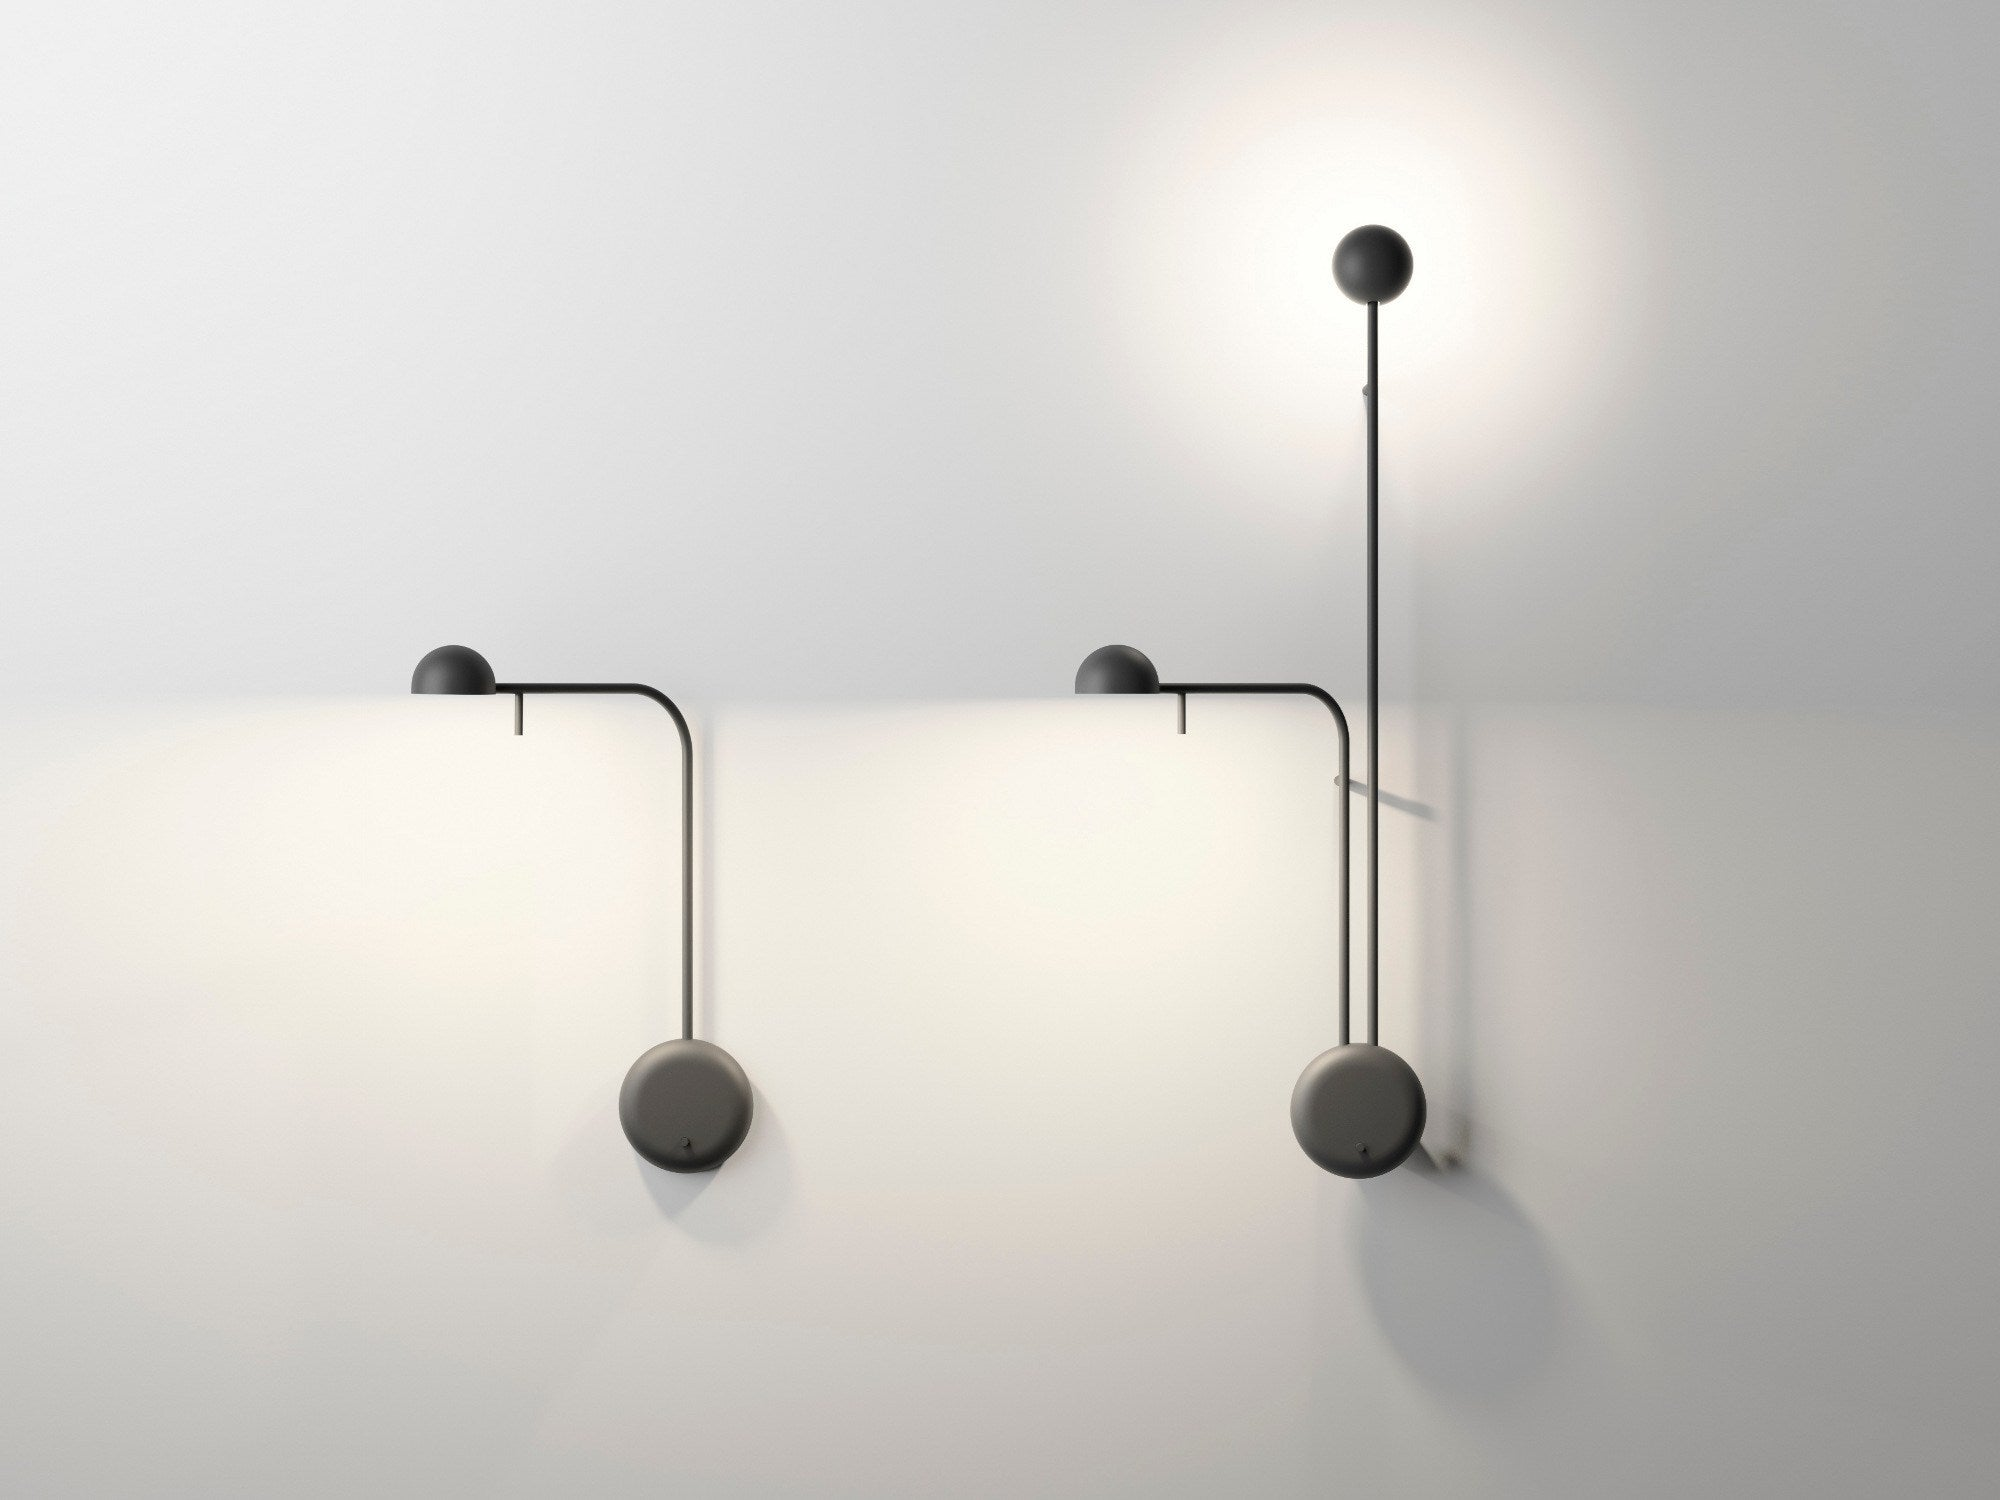 Pin Wall Lights - Abitalia South Coast UK